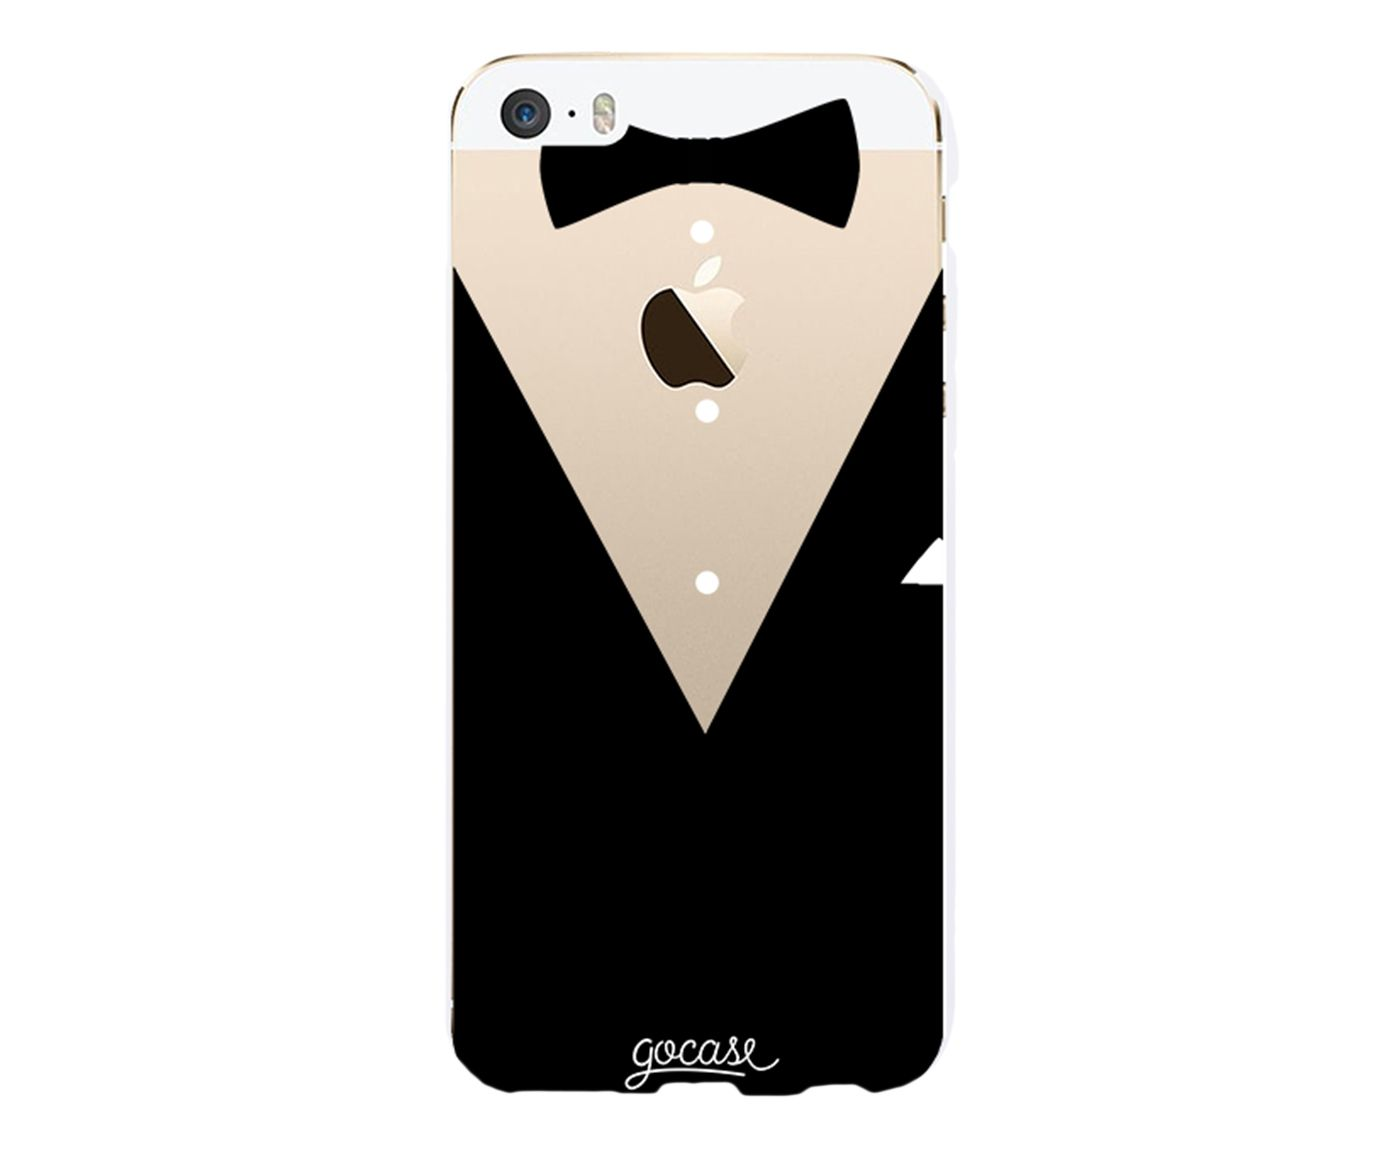 Case Smoking - Para iPhone 5C | Westwing.com.br